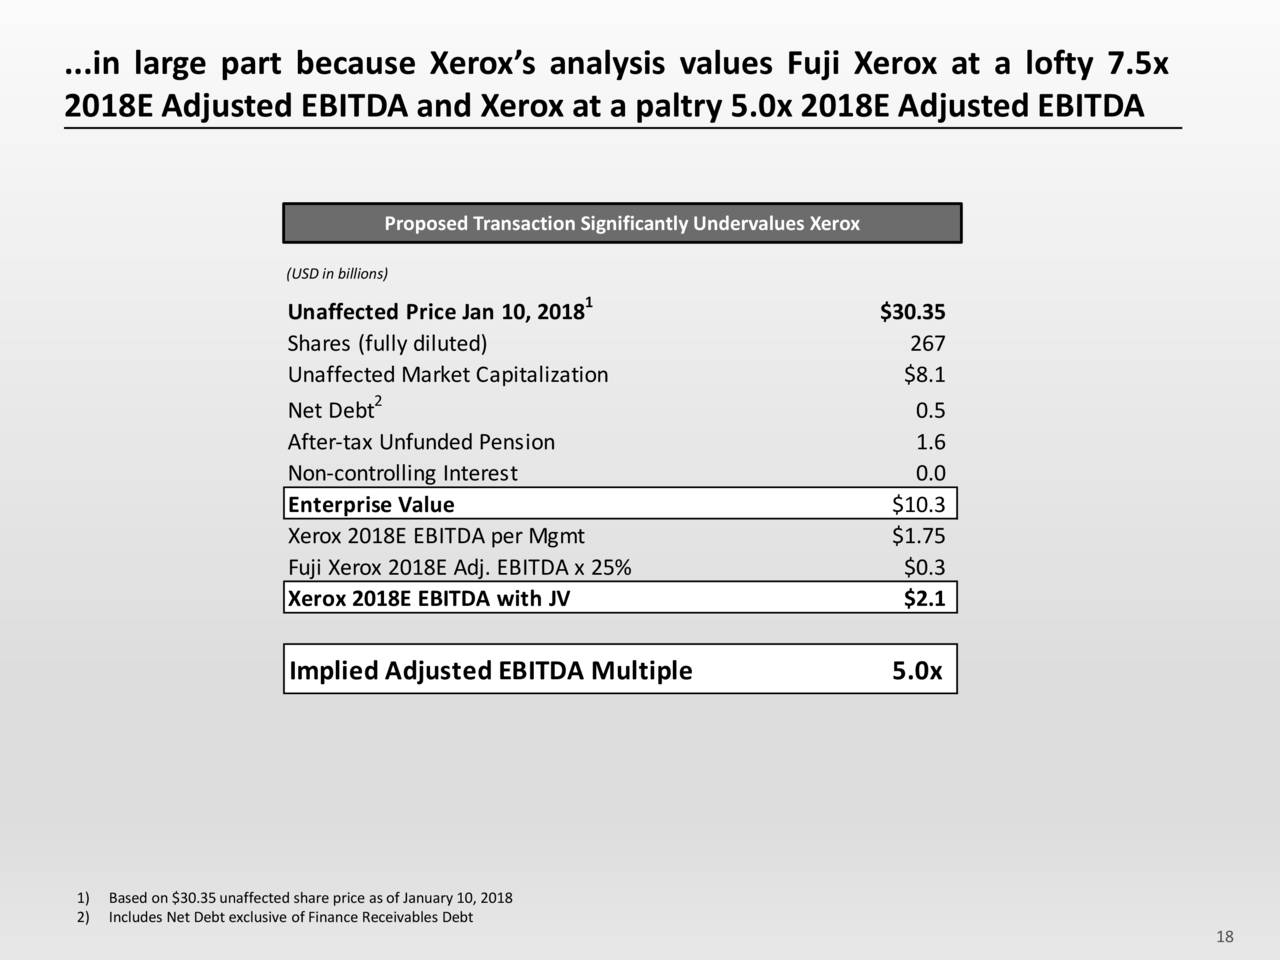 analysis of xerox corporation Read about the history of xerox corporation explore the company's history, profile, and timeline find the key facts you're looking for xerox sells half of its stake in fuji xerox to fuji photo film for more than $13 billion manufacturing outsourcing relationship with flextronics international ltd begins.